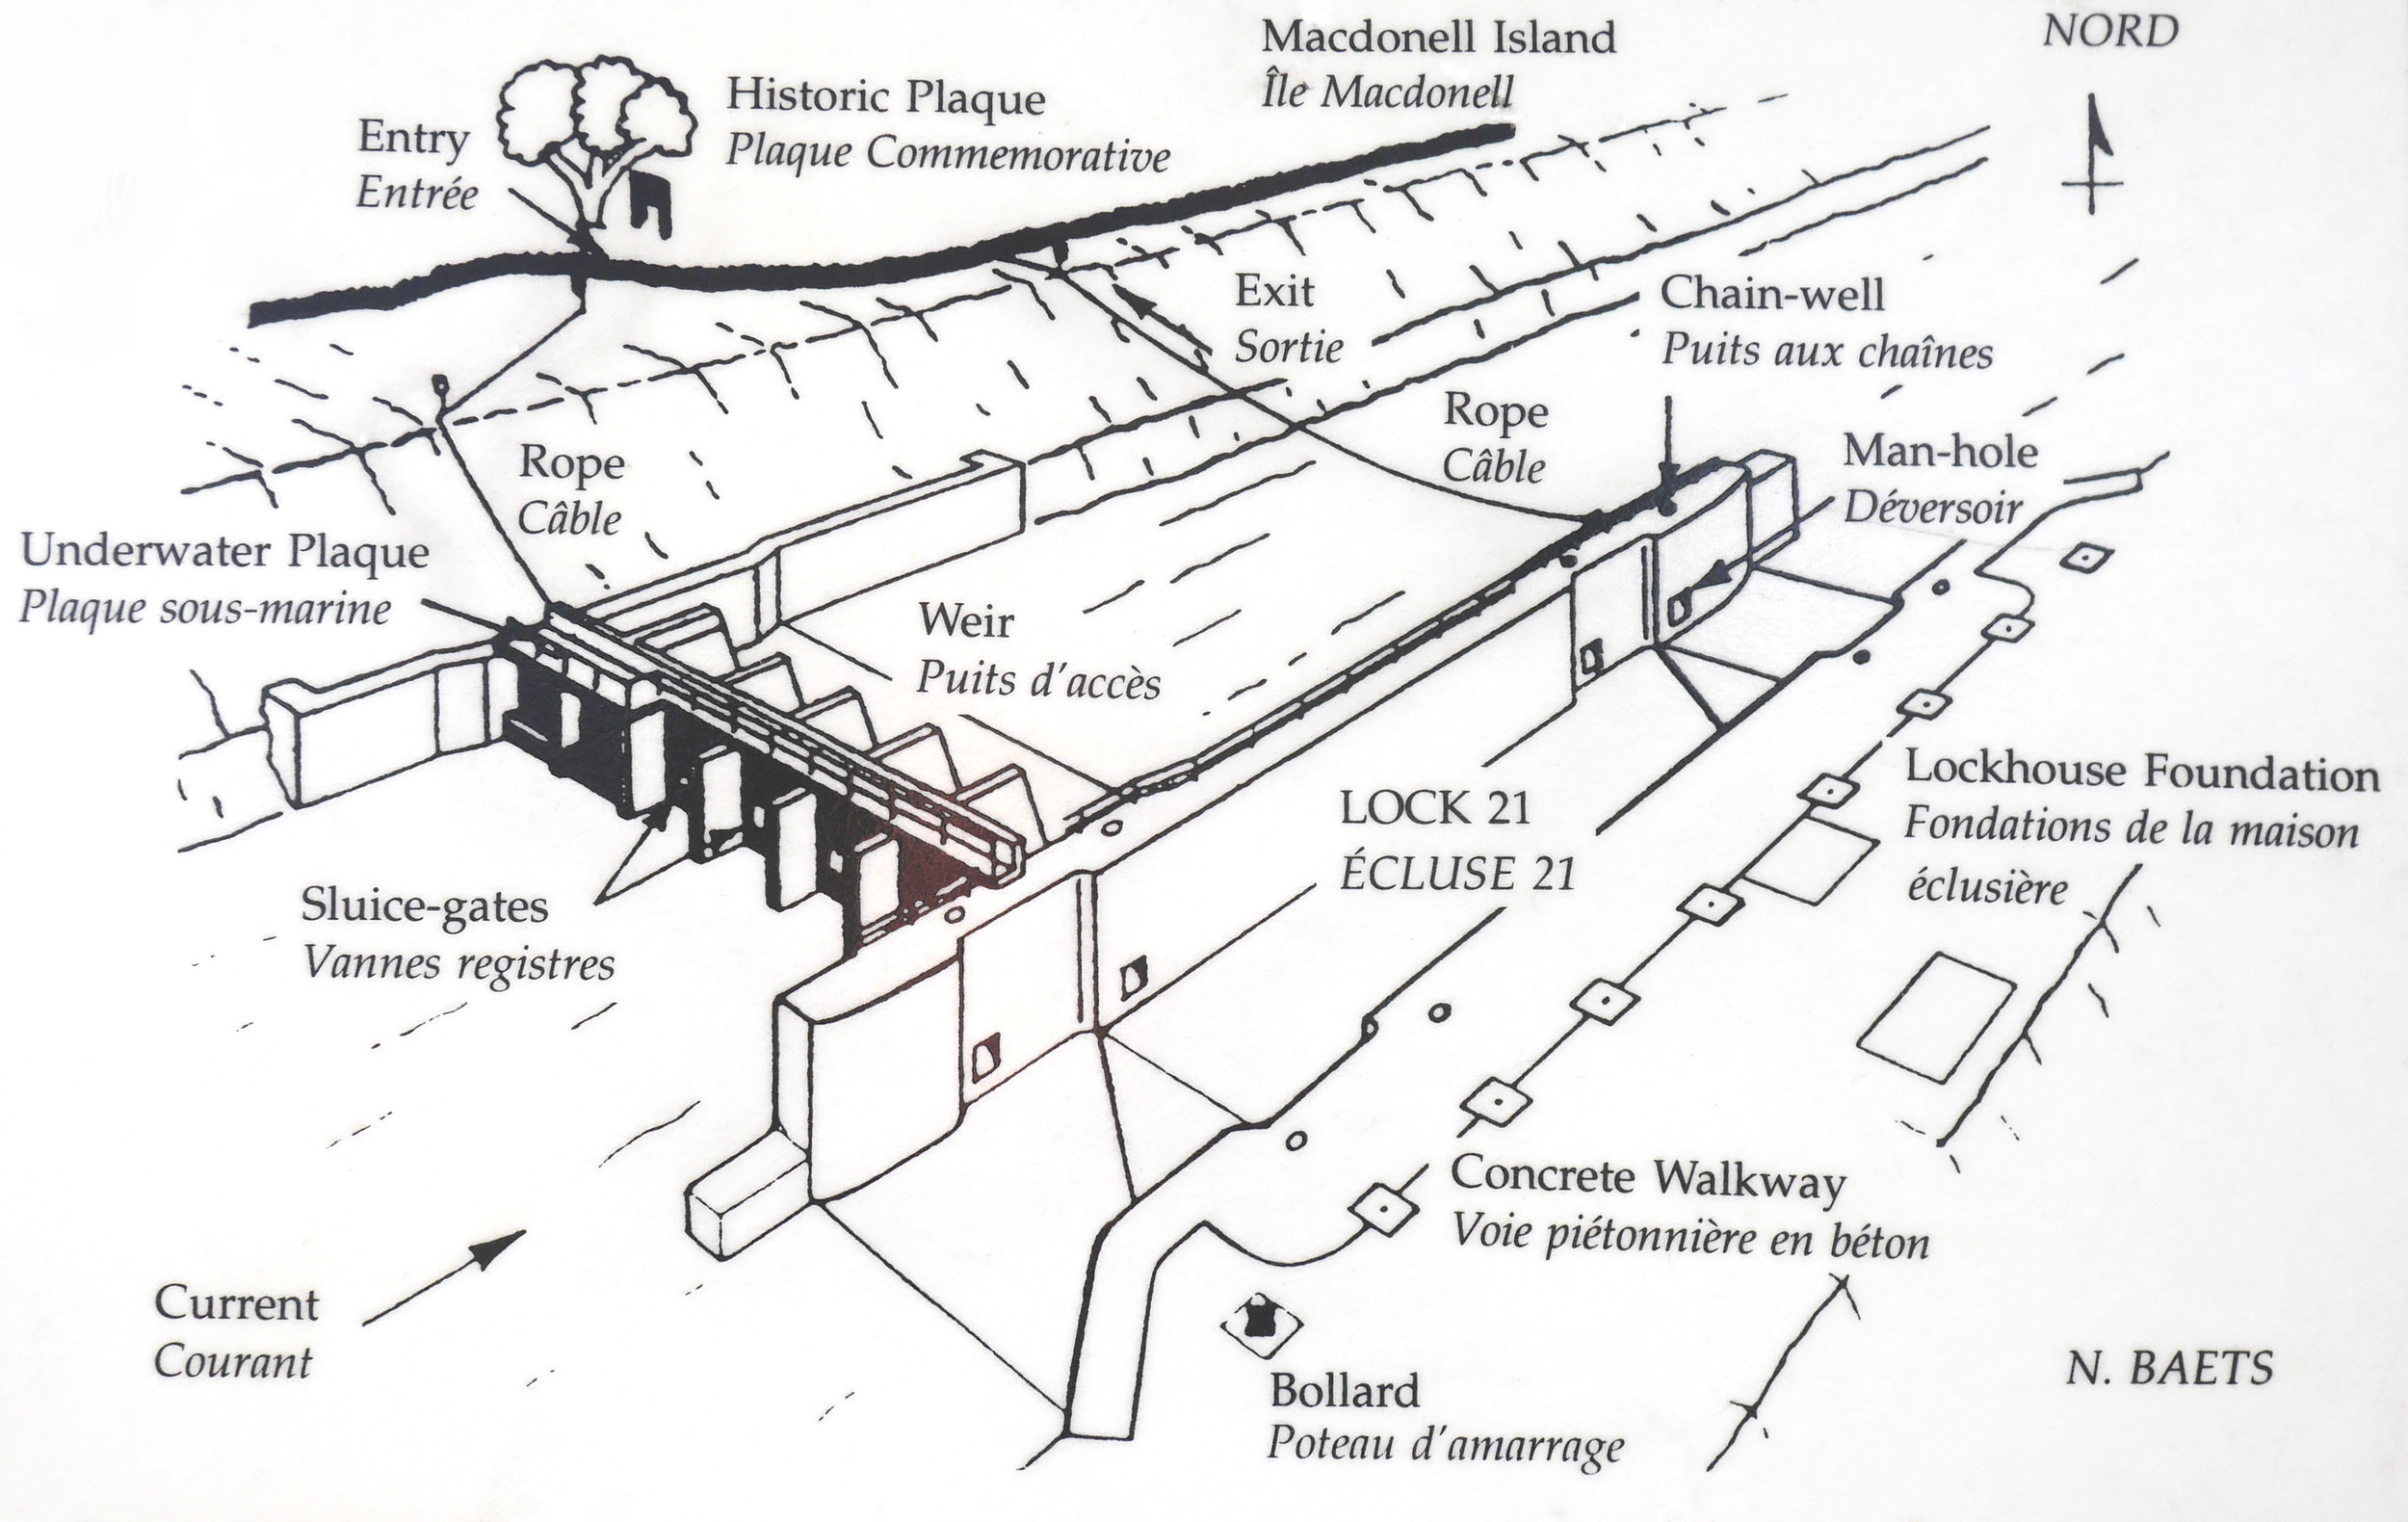 A plan of Lock 21 for divers on display in the information pavilion at the site.For our dive seen in the video we followed the rope down to the weir, went through the sluice gates and came up the other side.(plan: N. Baets).